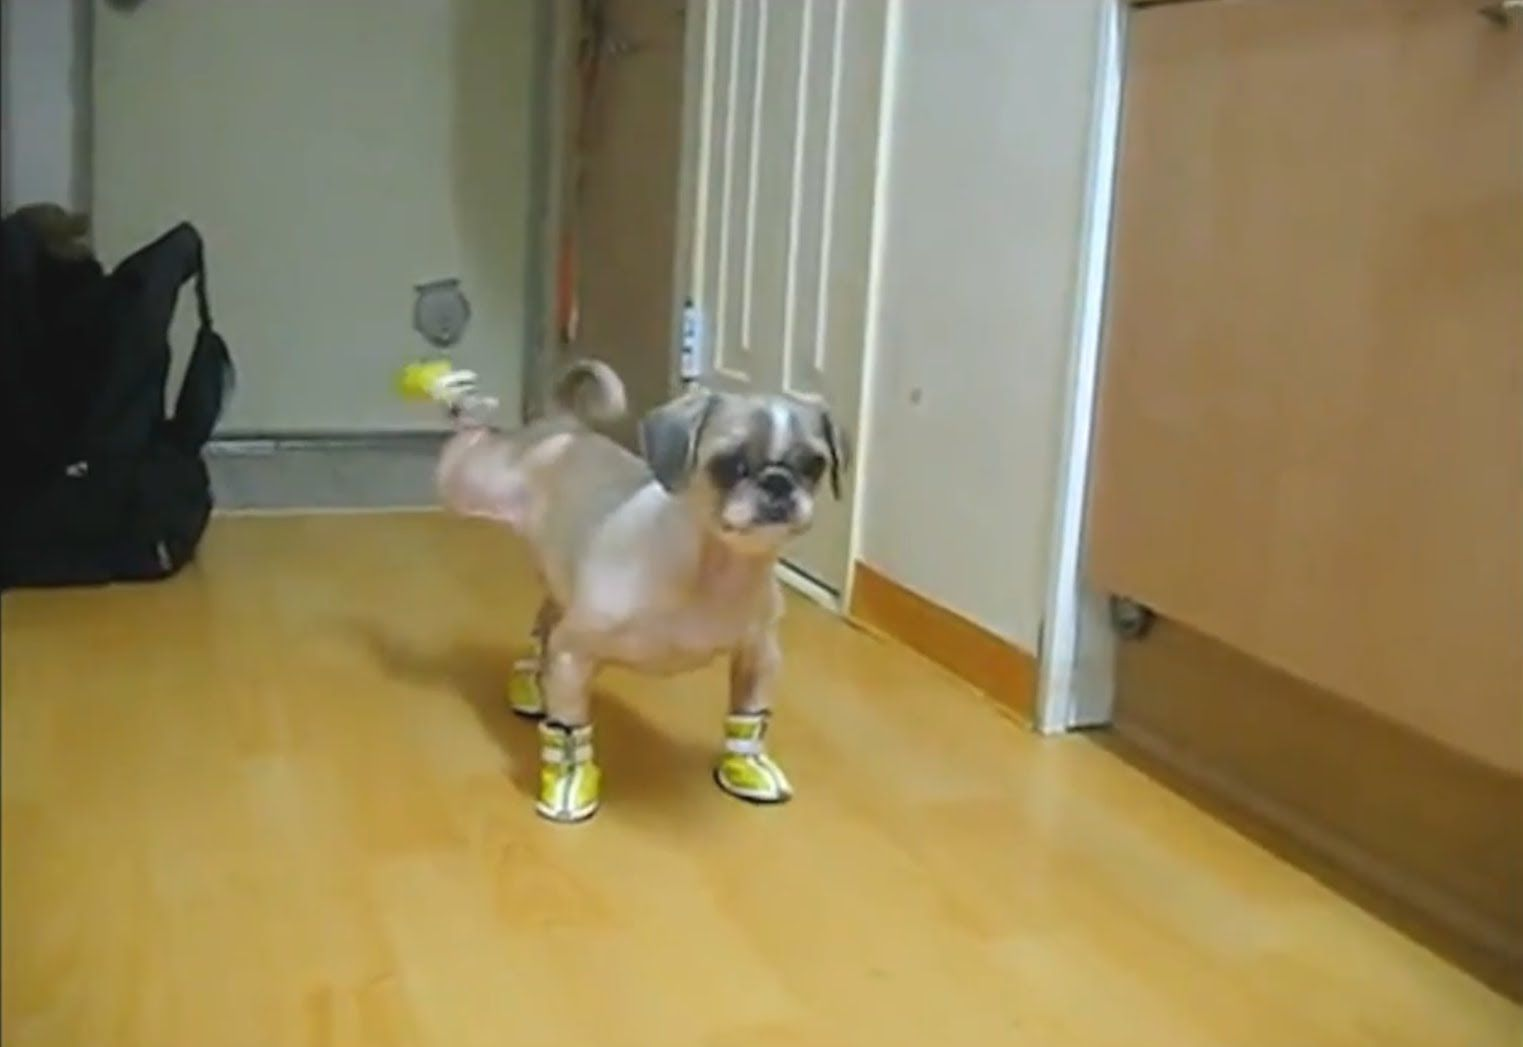 Funny videos of dogs